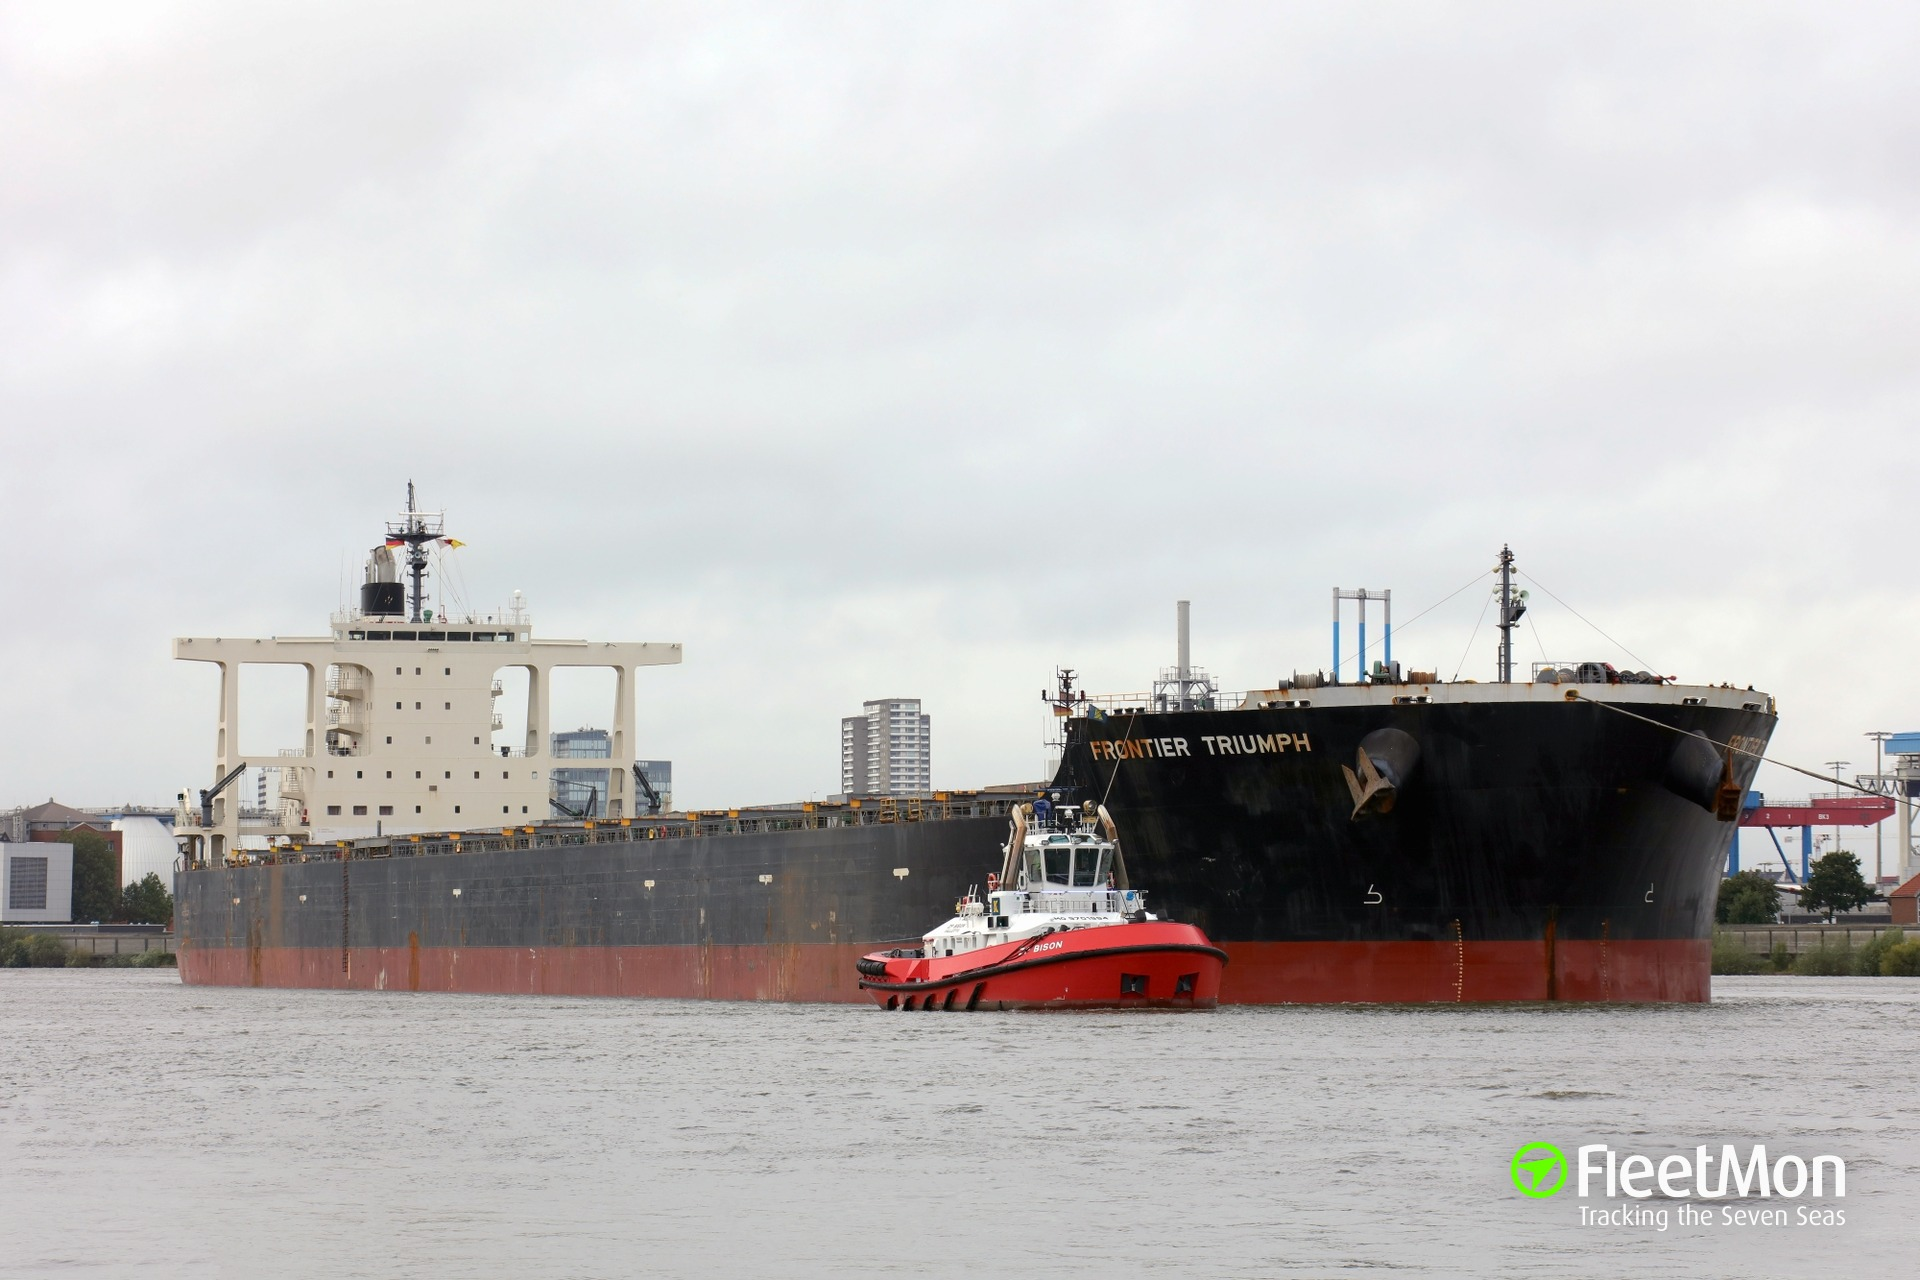 Japanese capesize FRONTIER TRIUMPH arrested, Master jailed, for using satellite phone Thuraya